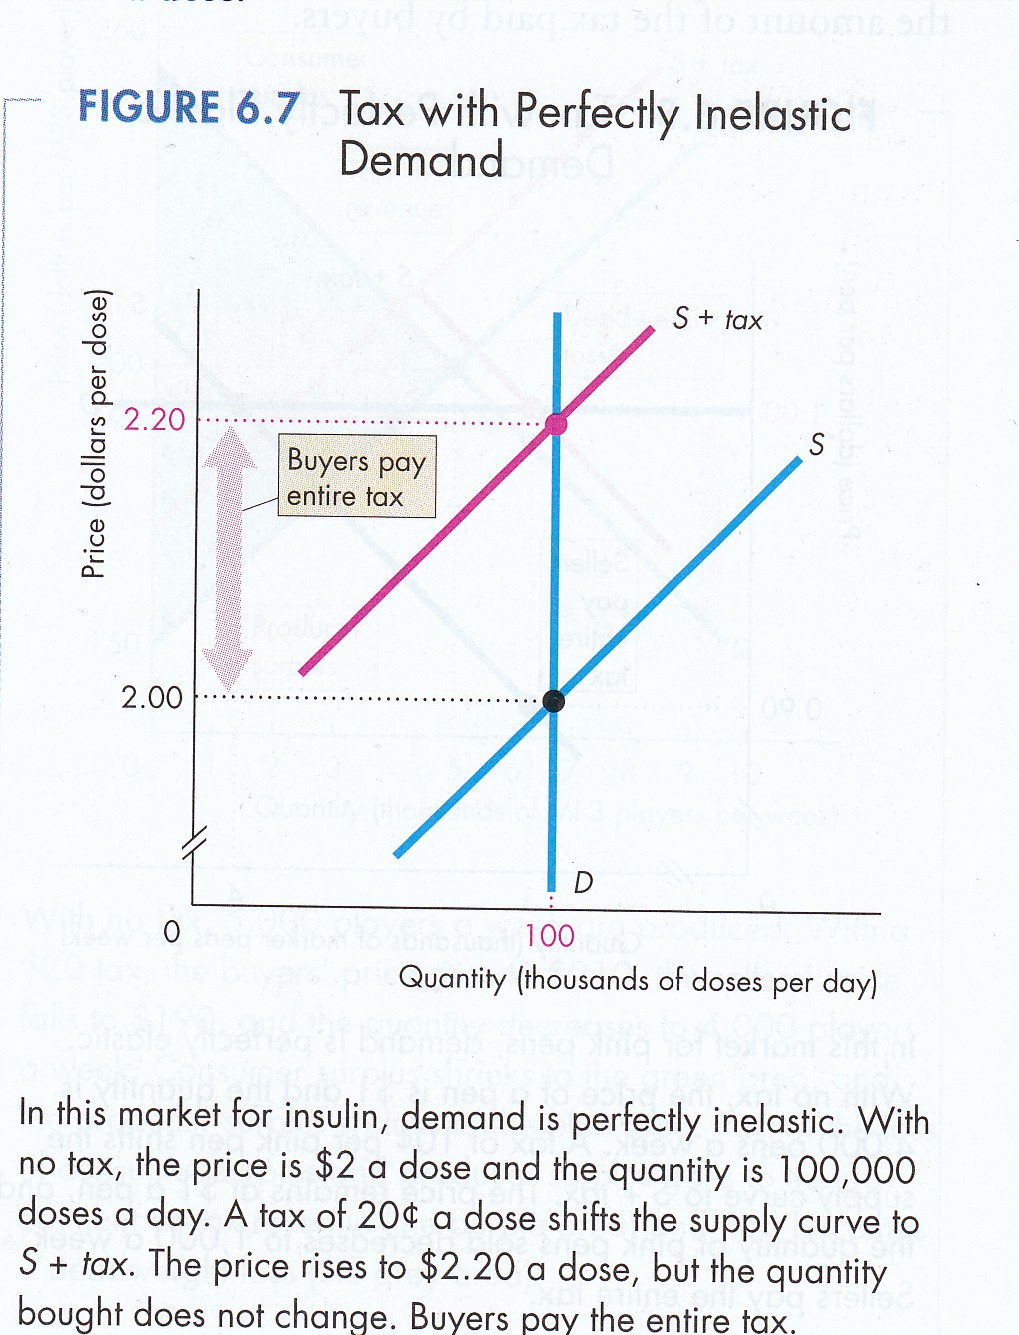 NEW ELASTIC OR INELASTIC DEMAND CURVE | Elastic